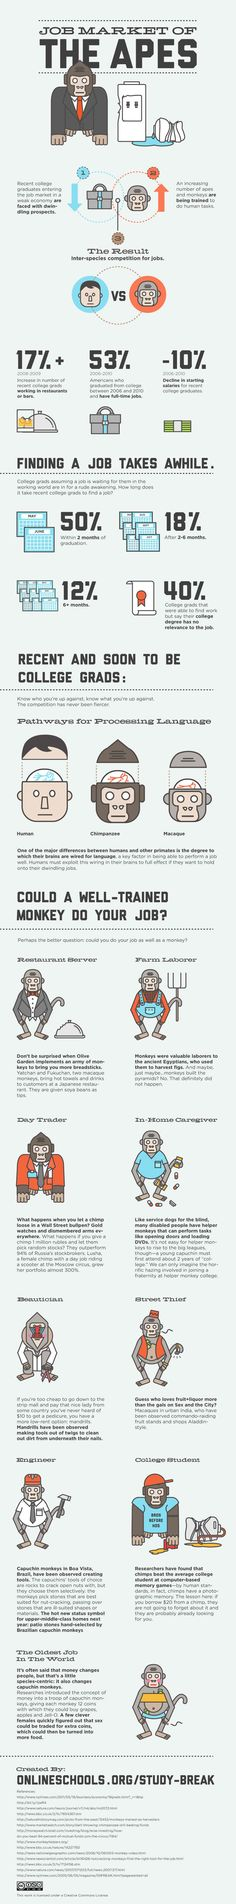 Unique Infographic Design, Jobs Market Of The Apes #infographic #Design (http://www.pinterest.com/aldenchong/)